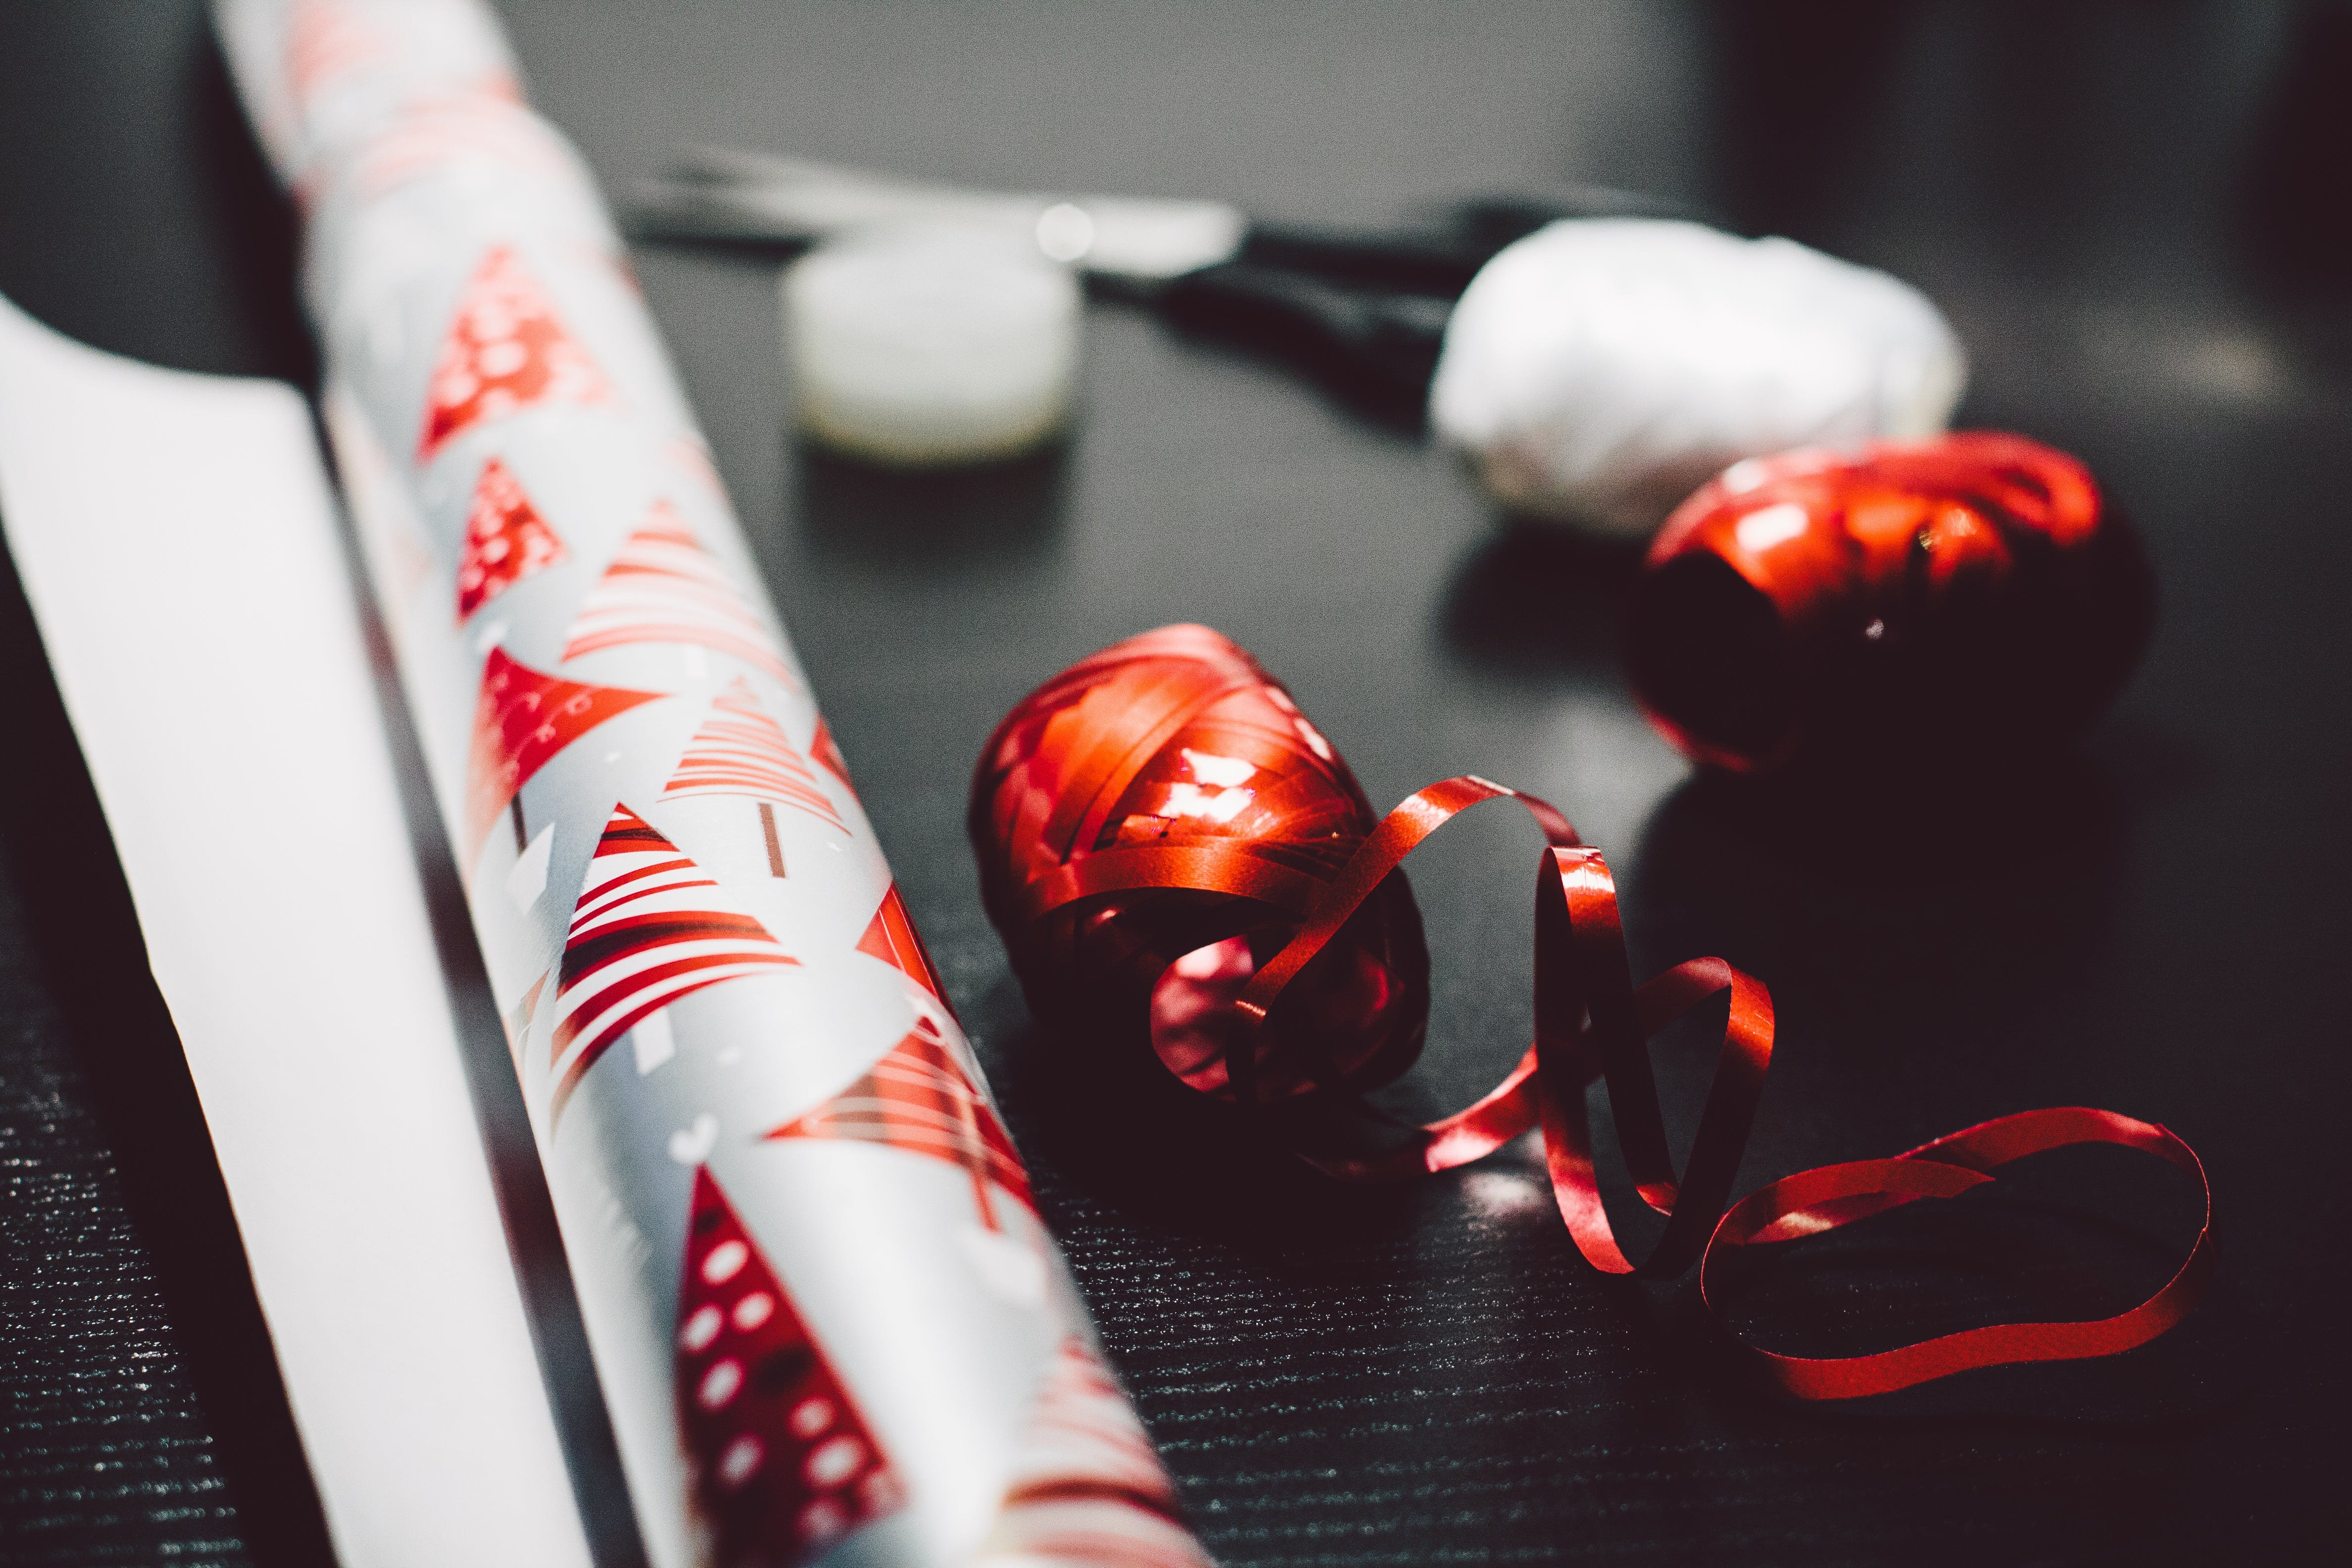 Free stock photo of gift, present, christmas, xmas